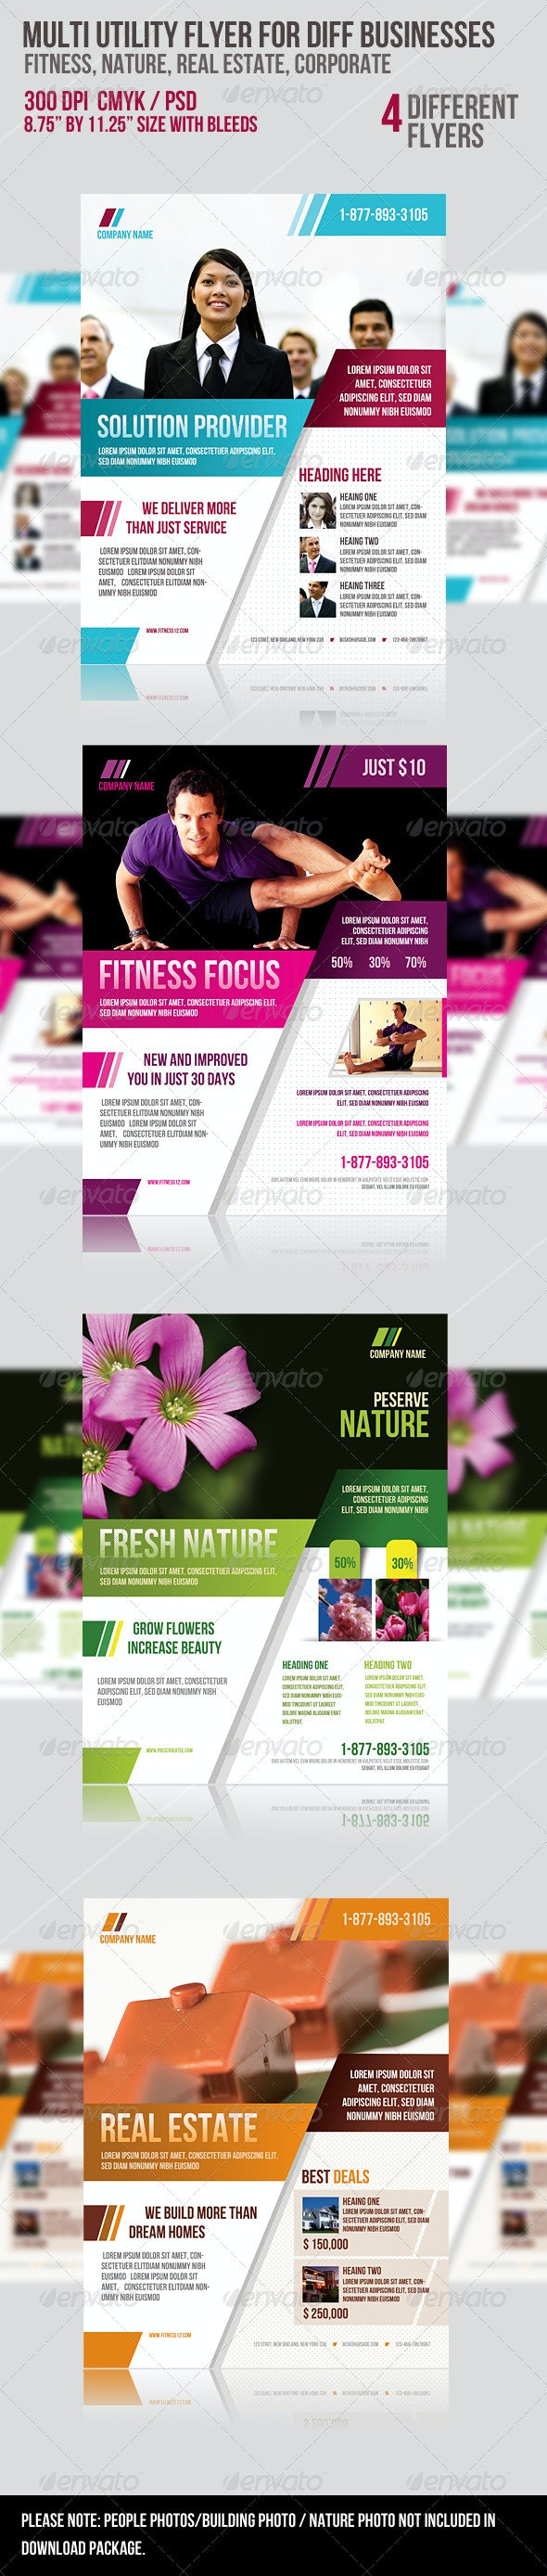 Multi-utility Flyer For Different Business - Corporate Flyers